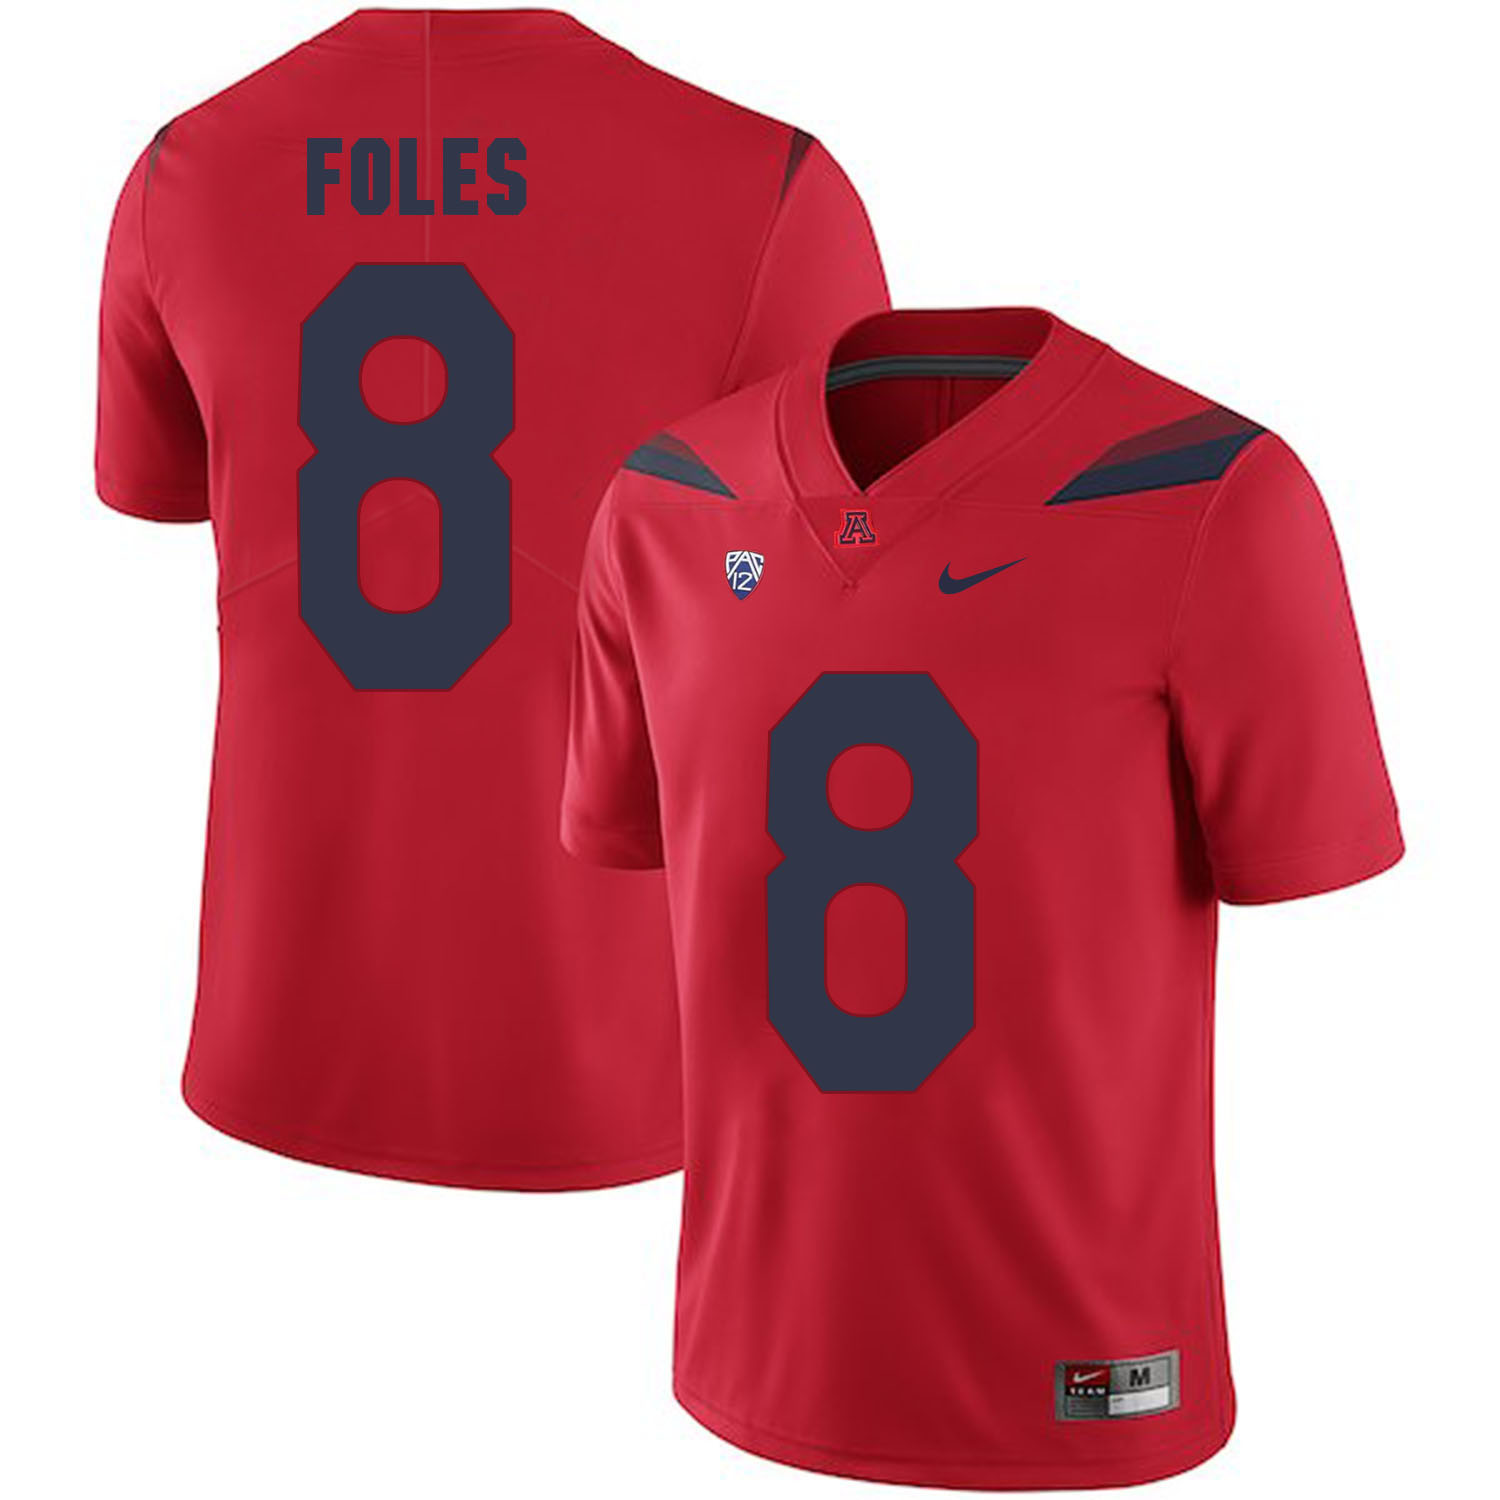 Arizona Wildcats 8 Nick Foles Red College Football Jersey